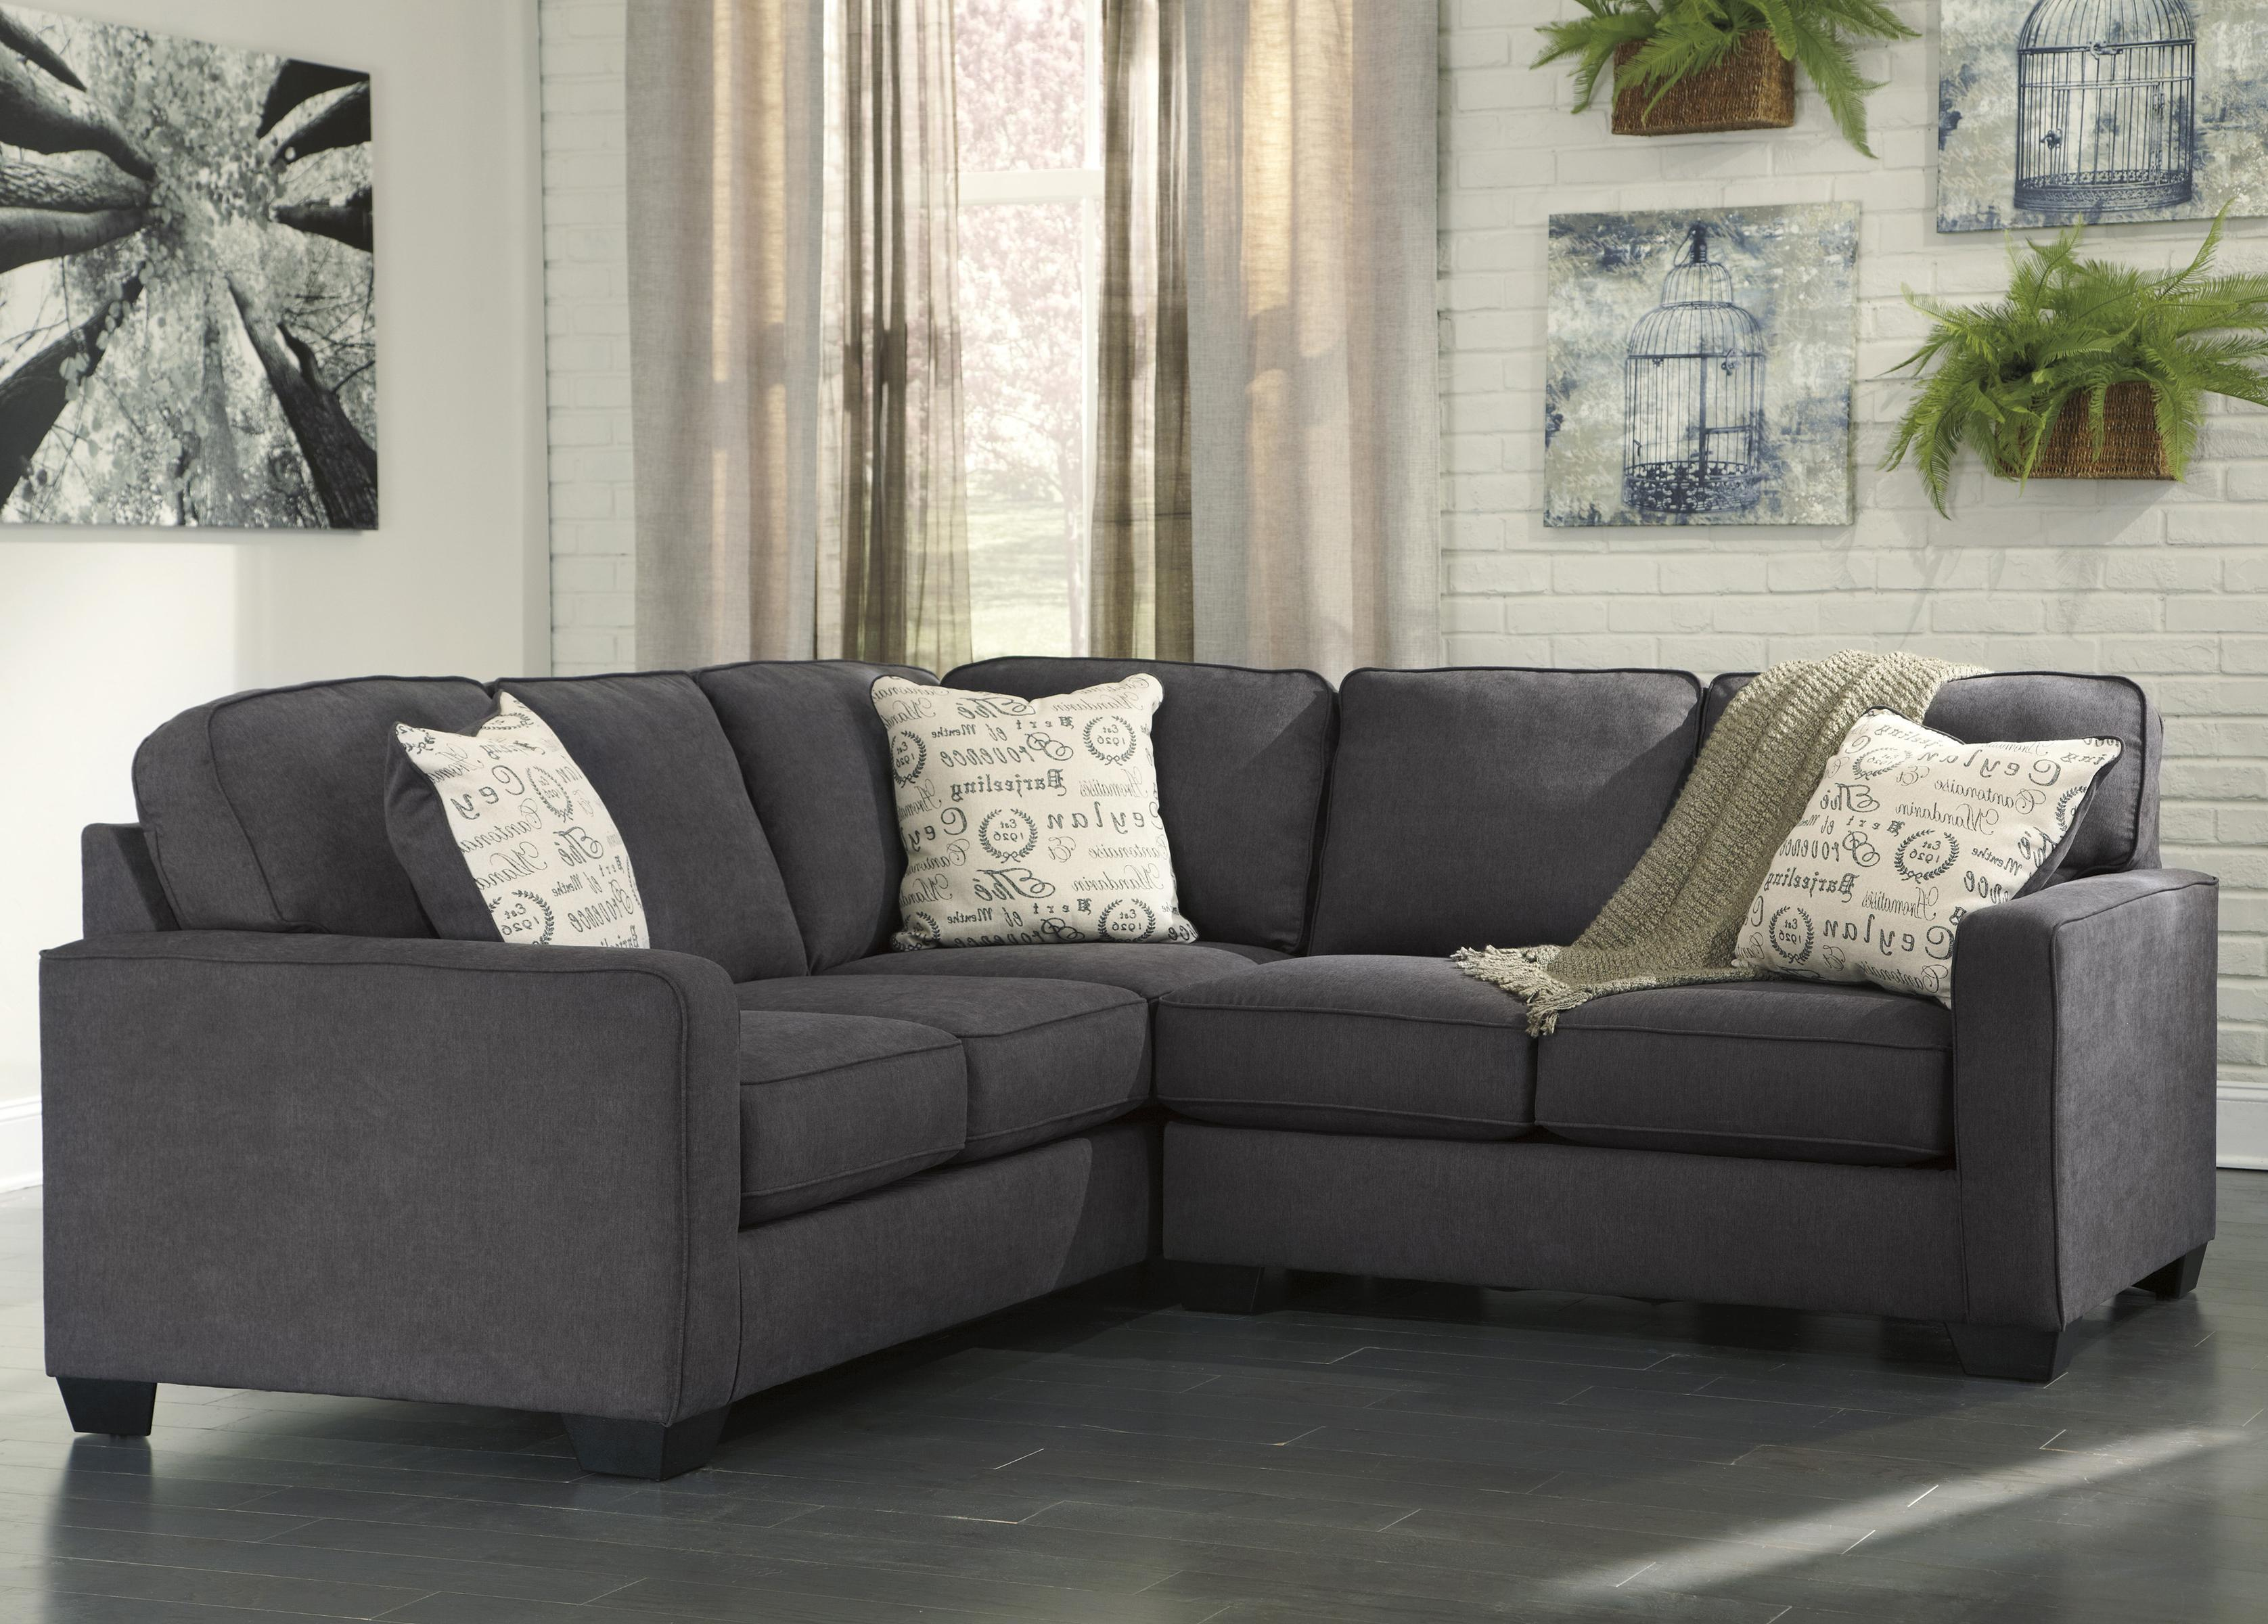 Signature Design By Ashley Alenya Charcoal 2 Piece Sectional With Right Loveseat Royal